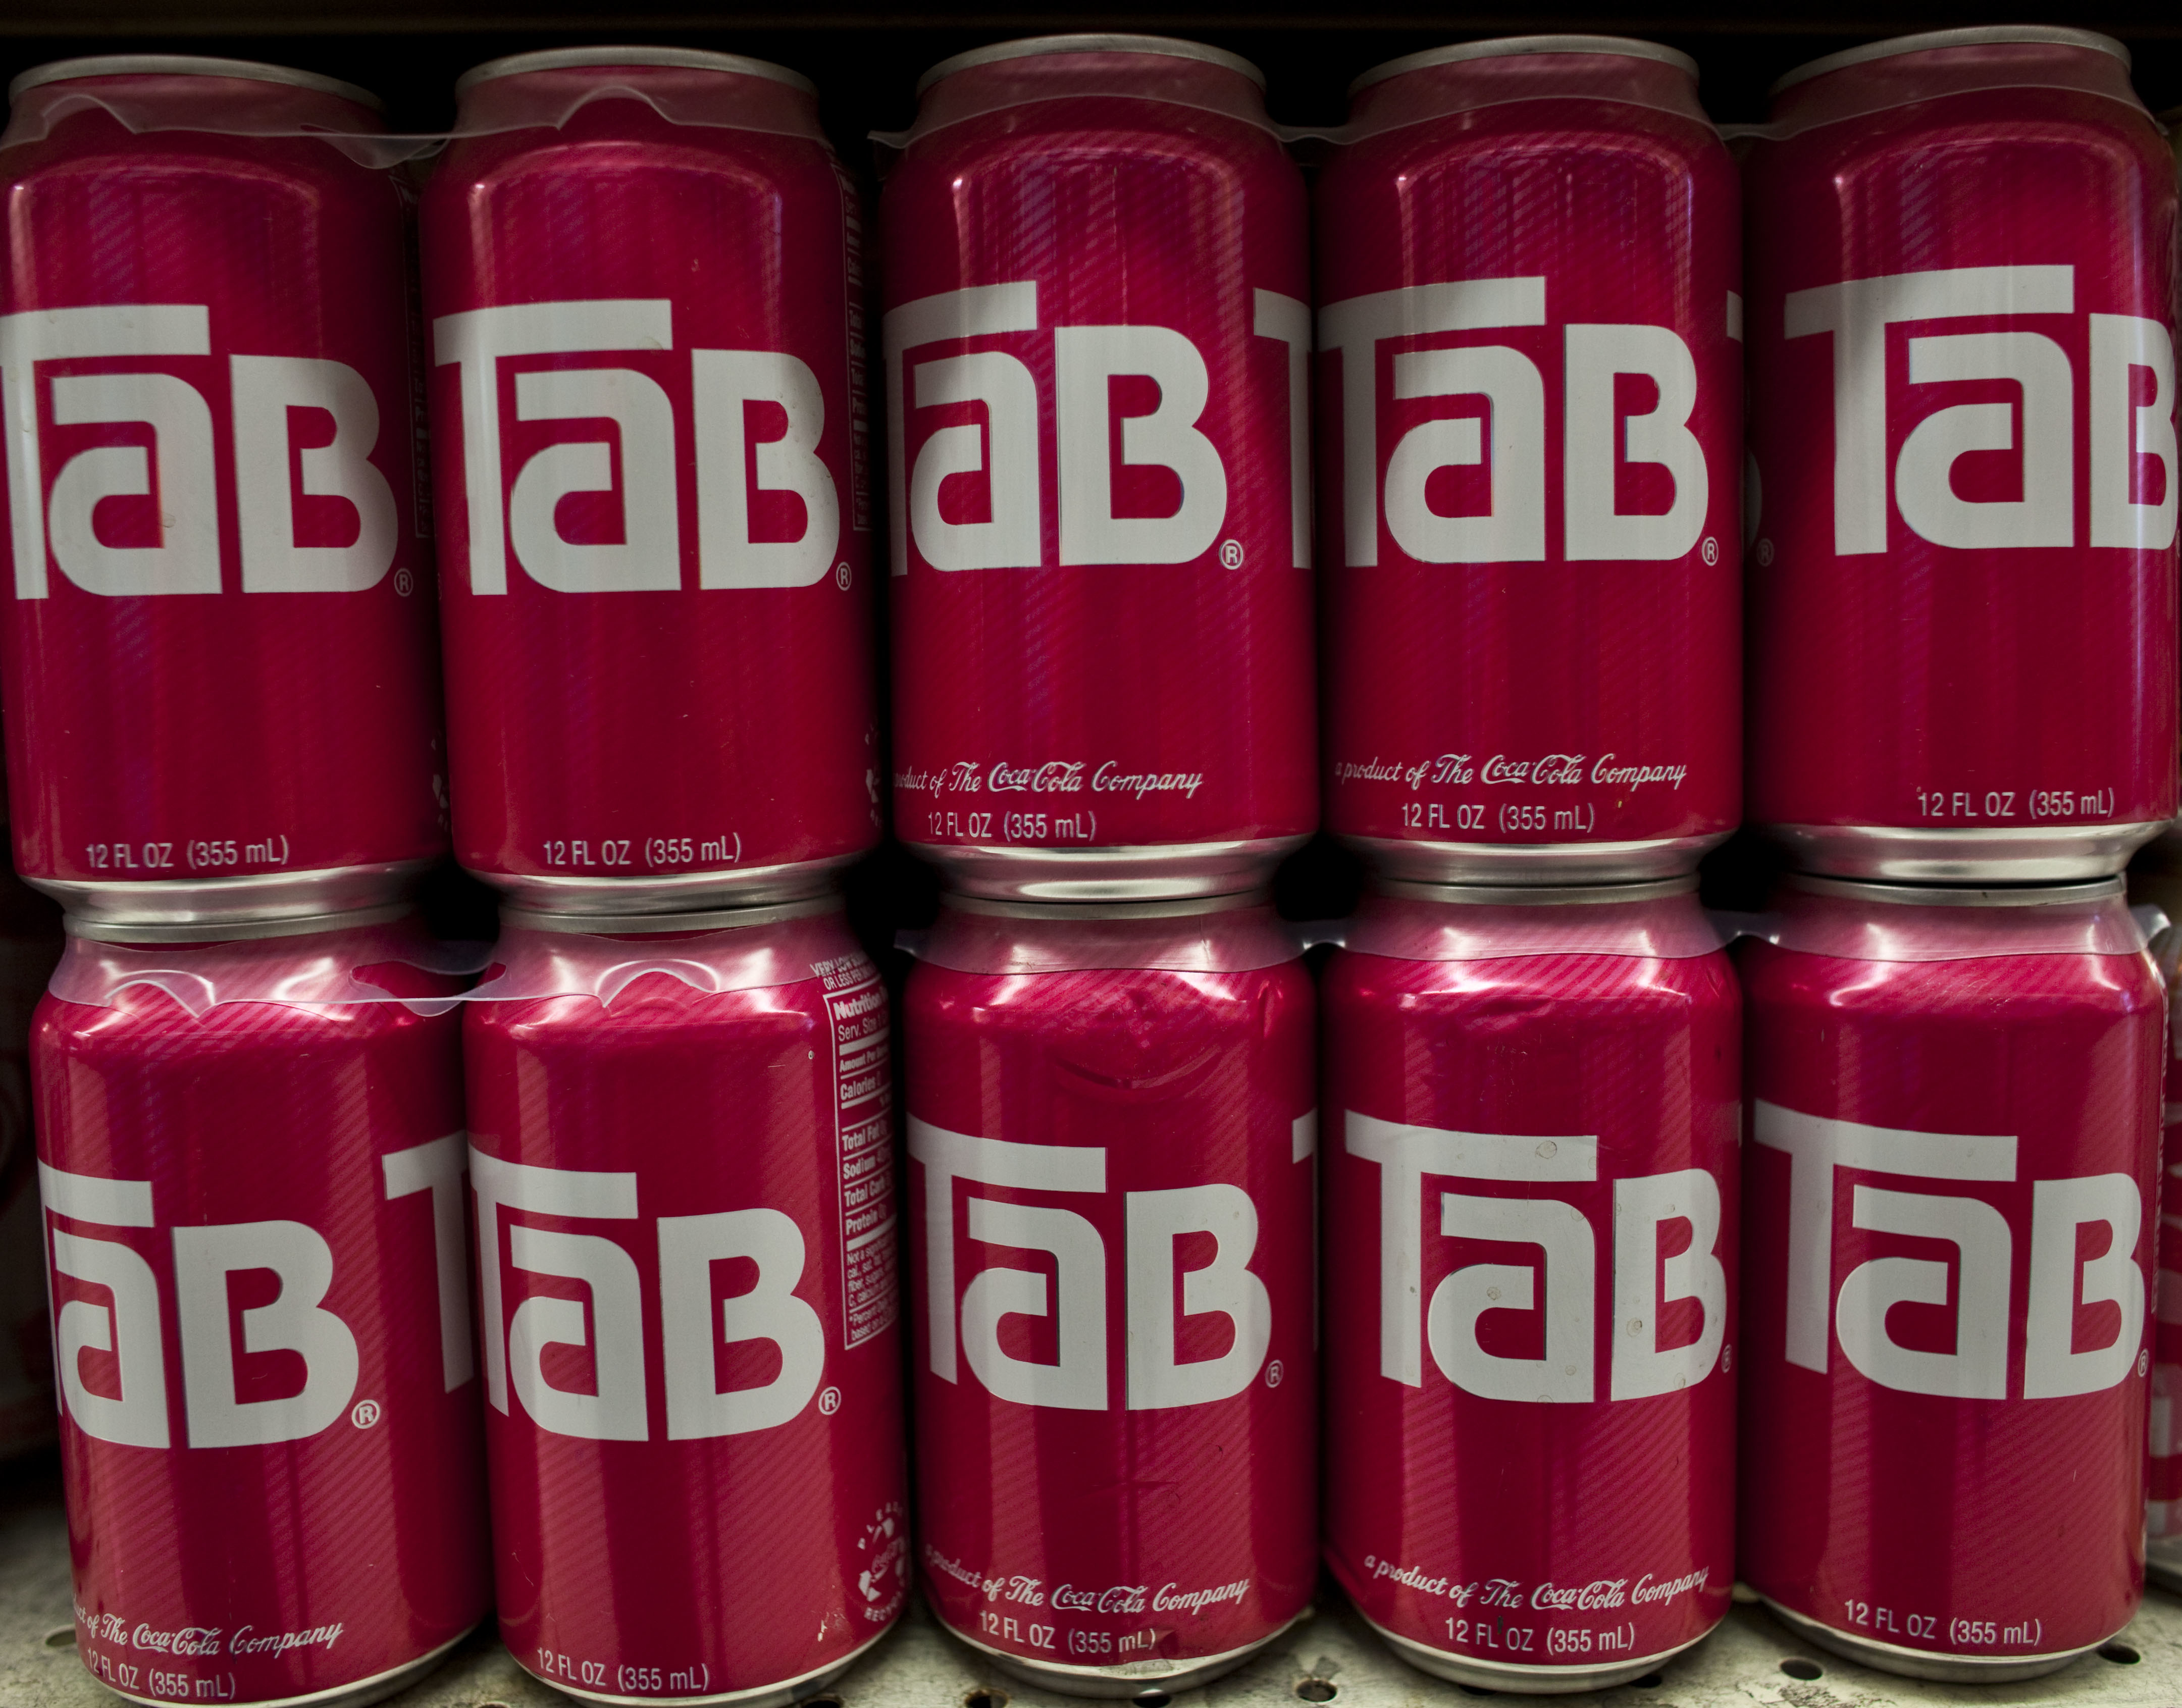 Rows of Tab soda cans displayed on a grocery shelf.